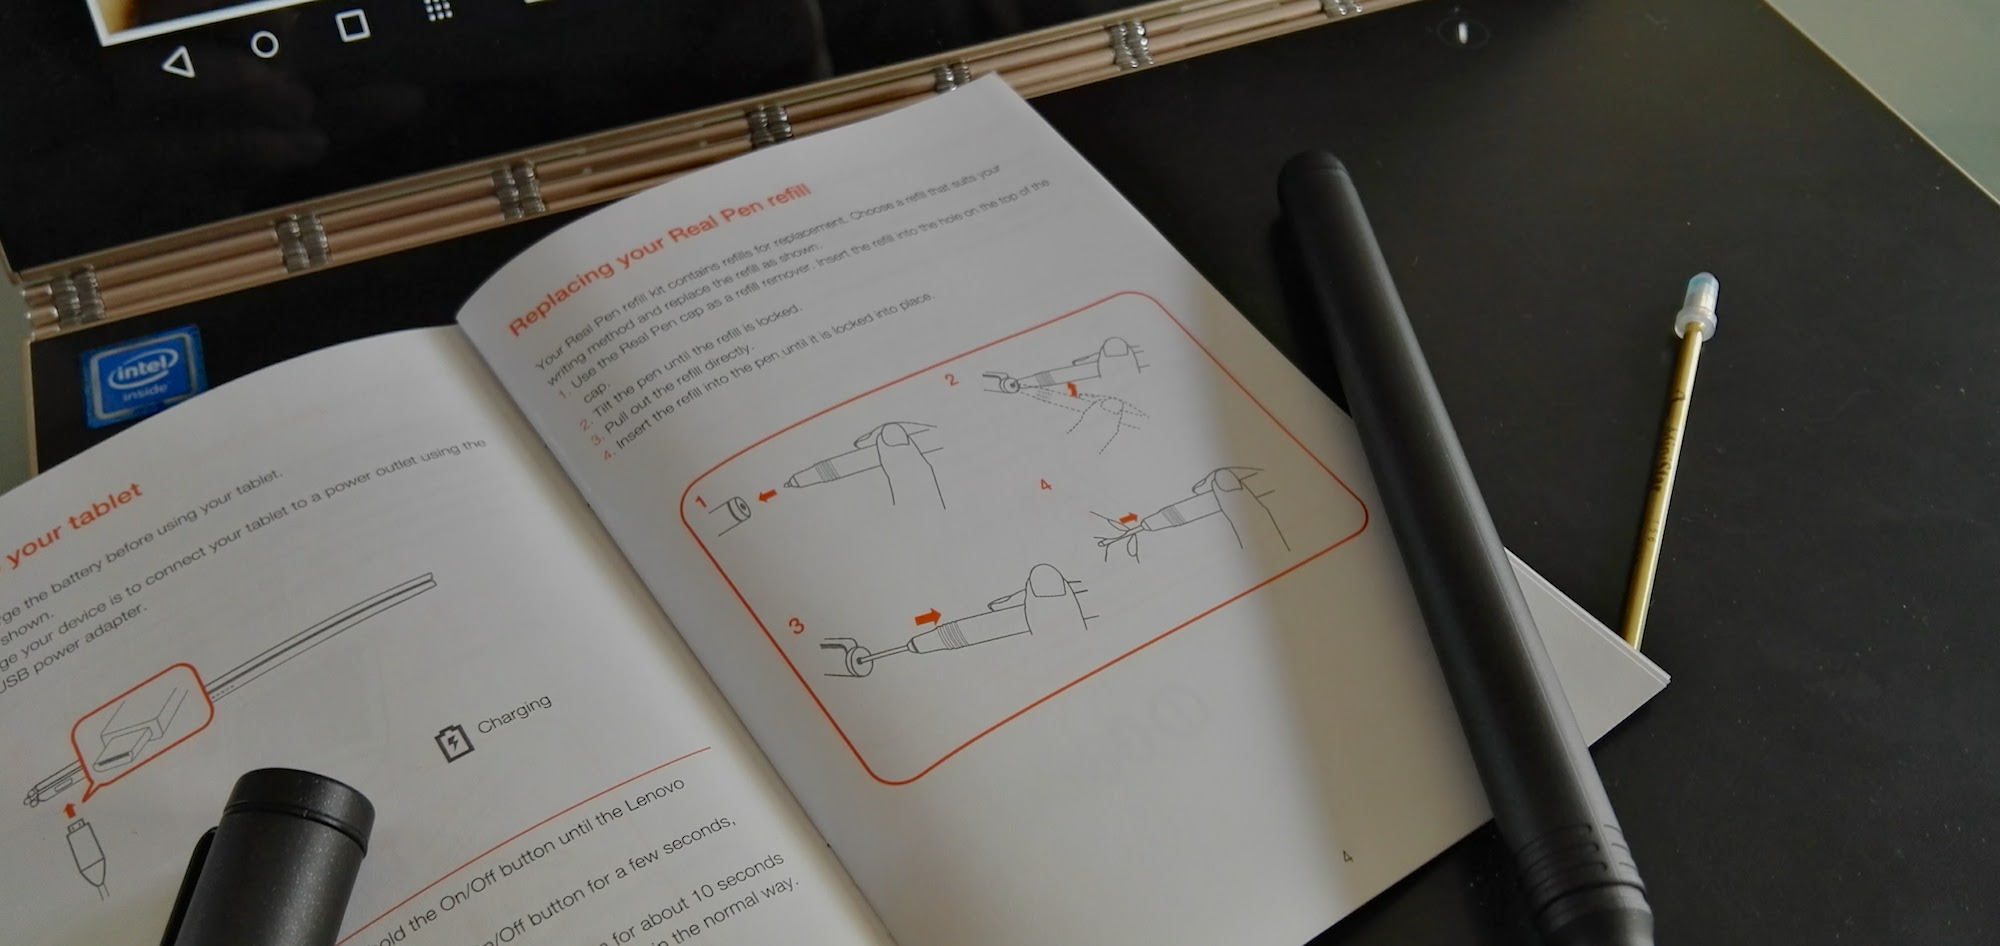 Explaining the Lenovo Yoga Book's hybrid stylus system